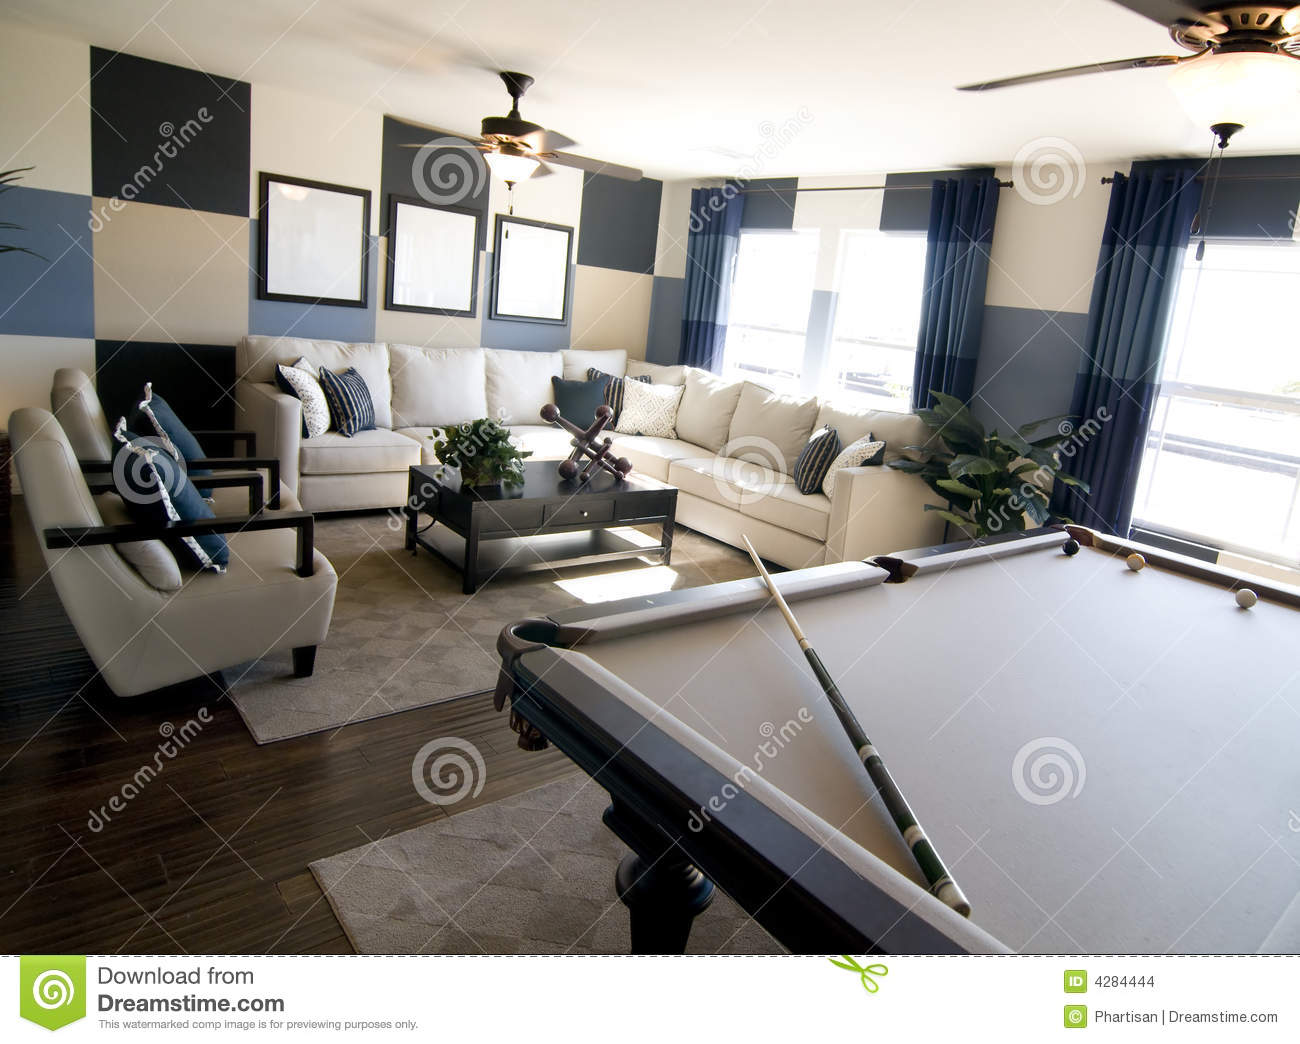 Delightful Download Luxury Game Room Interior Design Stock Photo   Image Of Decorate,  Space: 4284444 Great Ideas